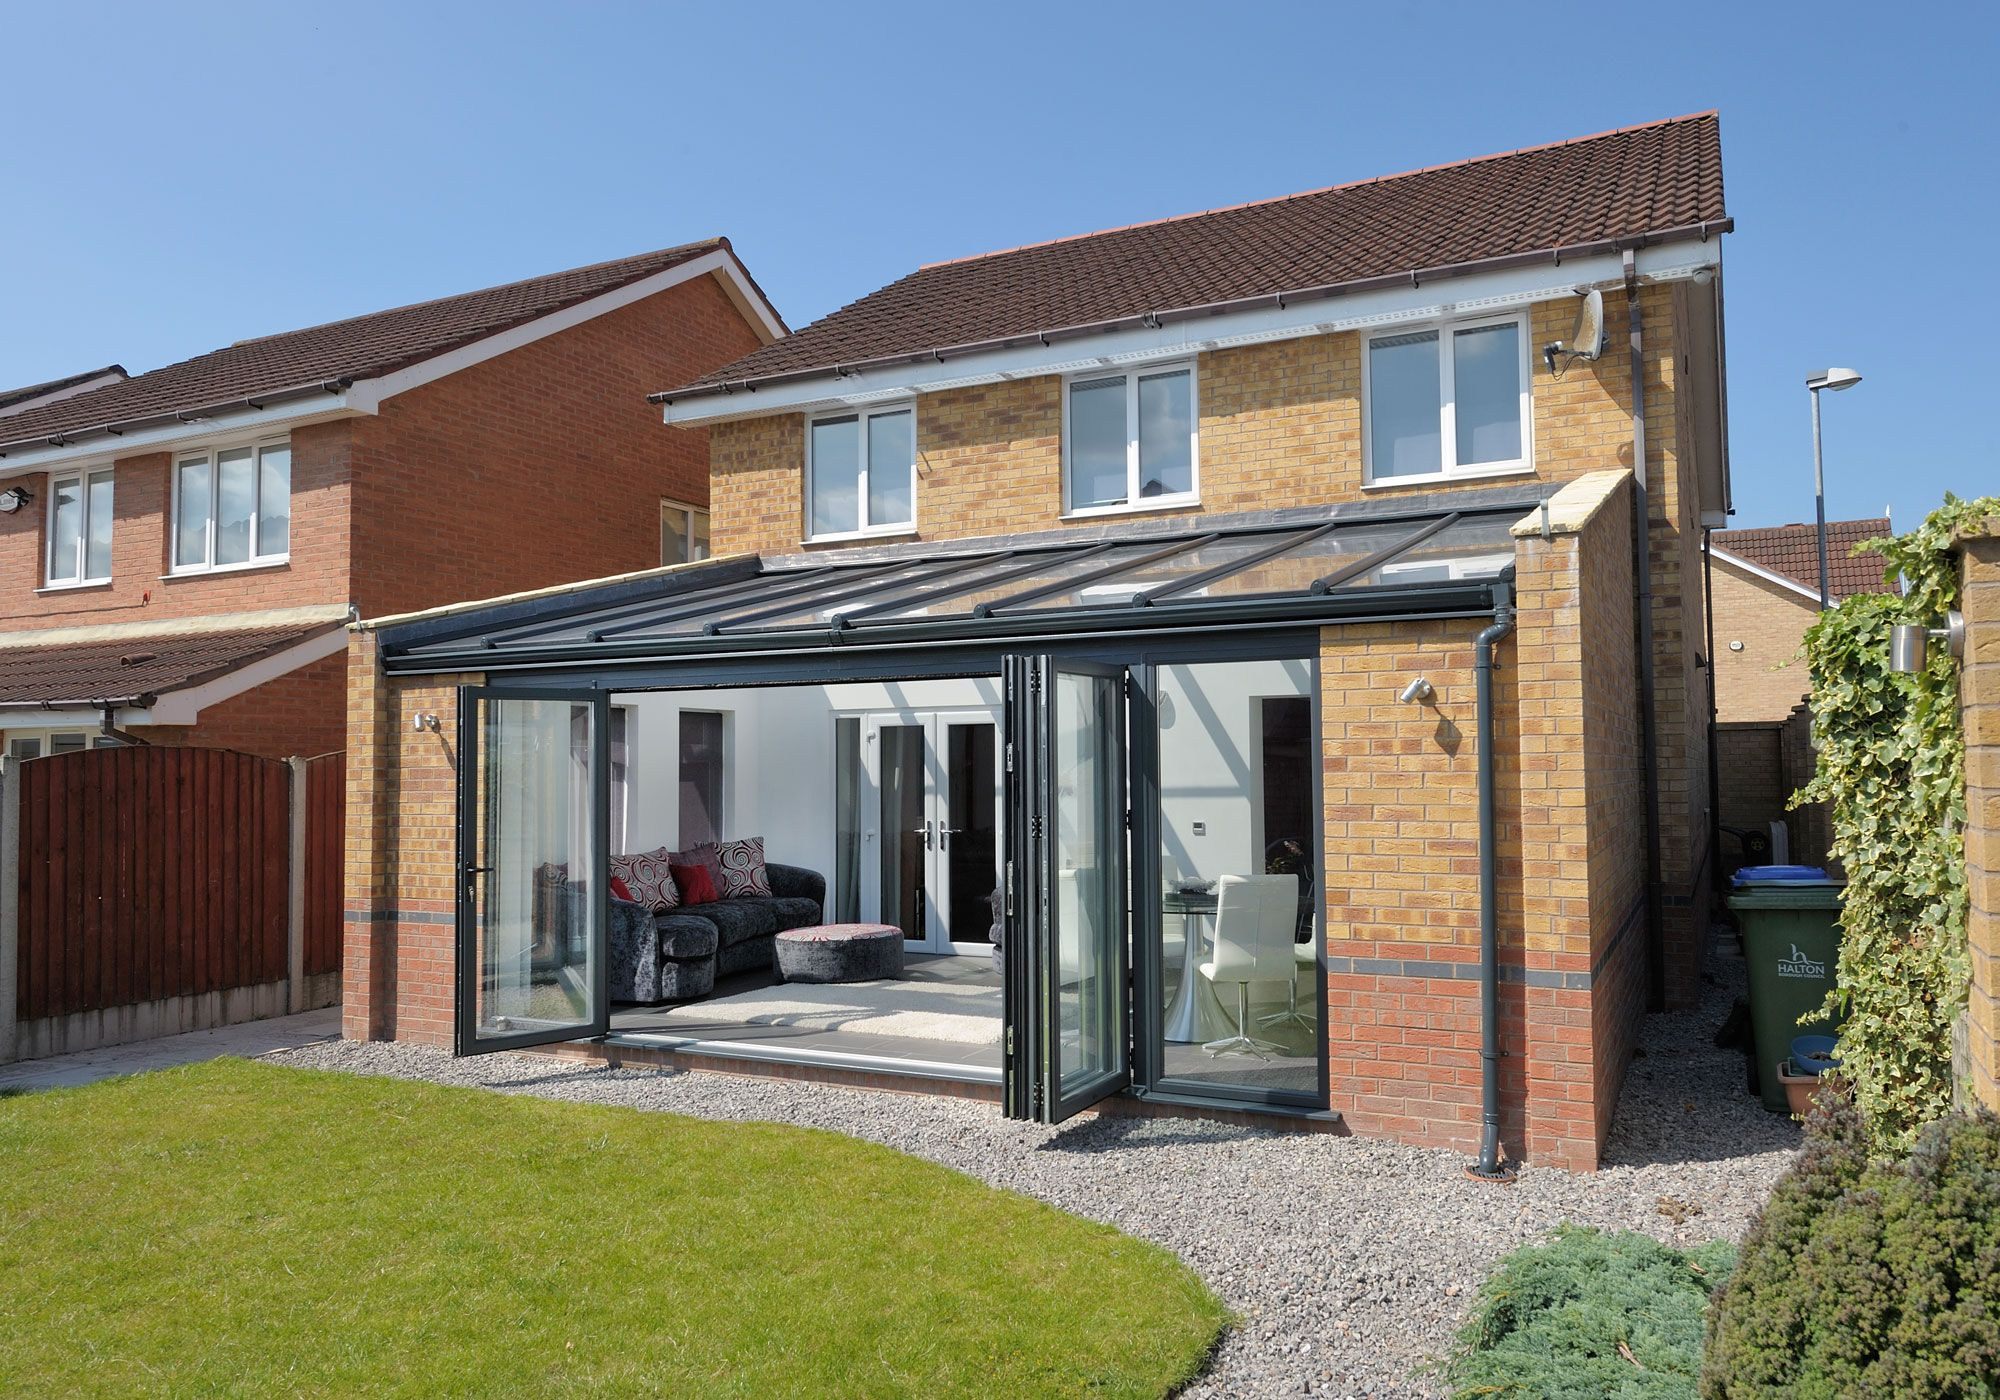 Conservatories concept windows and conservatories essex - Shepway Glass Specialise In A Variety Of Products Including Upvc And Aluminium Windows And Doors Conservatories Glass Splashbacks Glass Balustrades